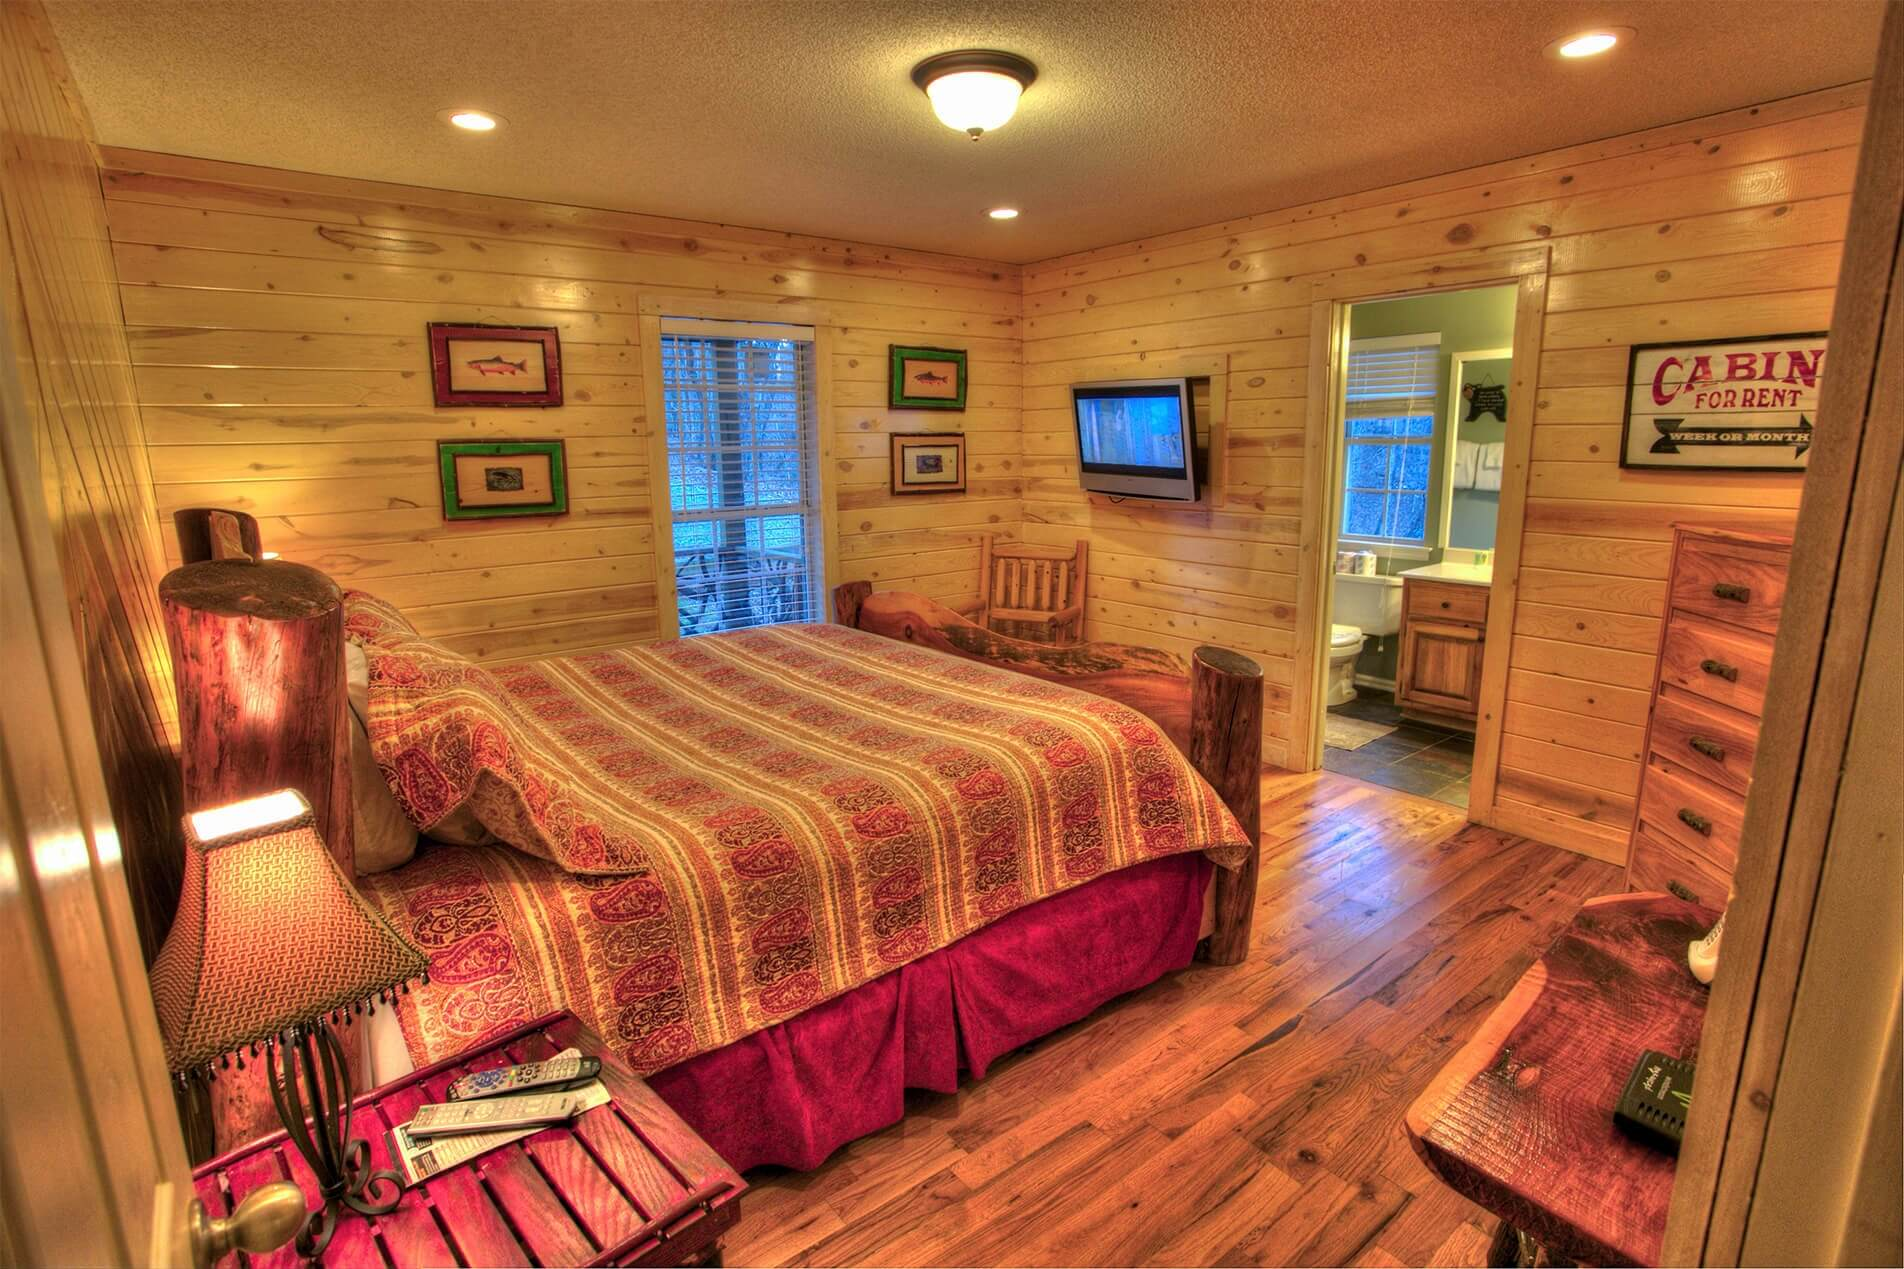 miss woods pictures near ga t don of gorgeous gastate pin helen cabins smithgall these